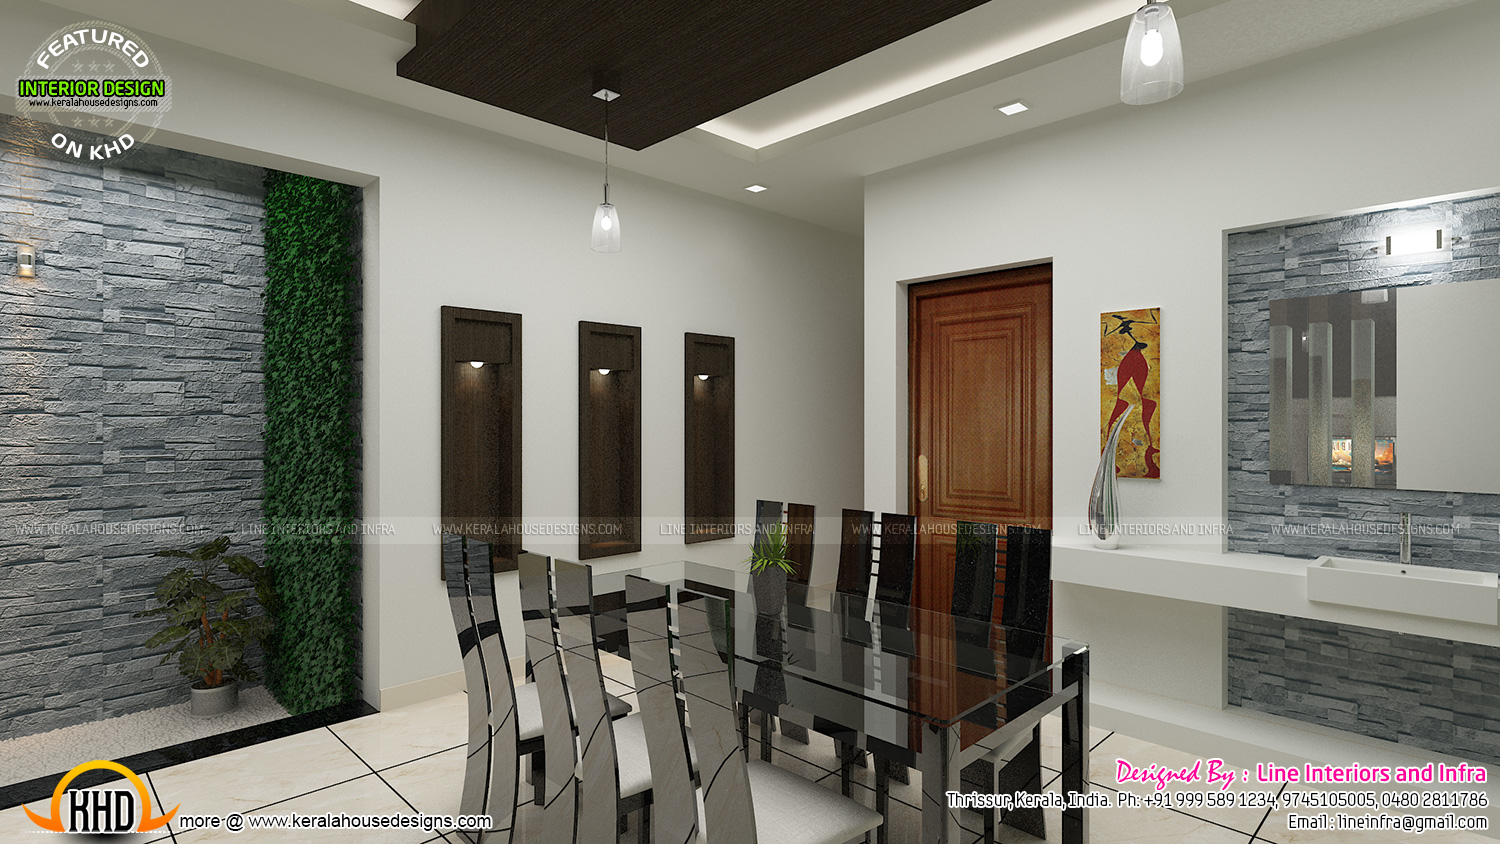 and courtyard interior design kerala home design and floor plans